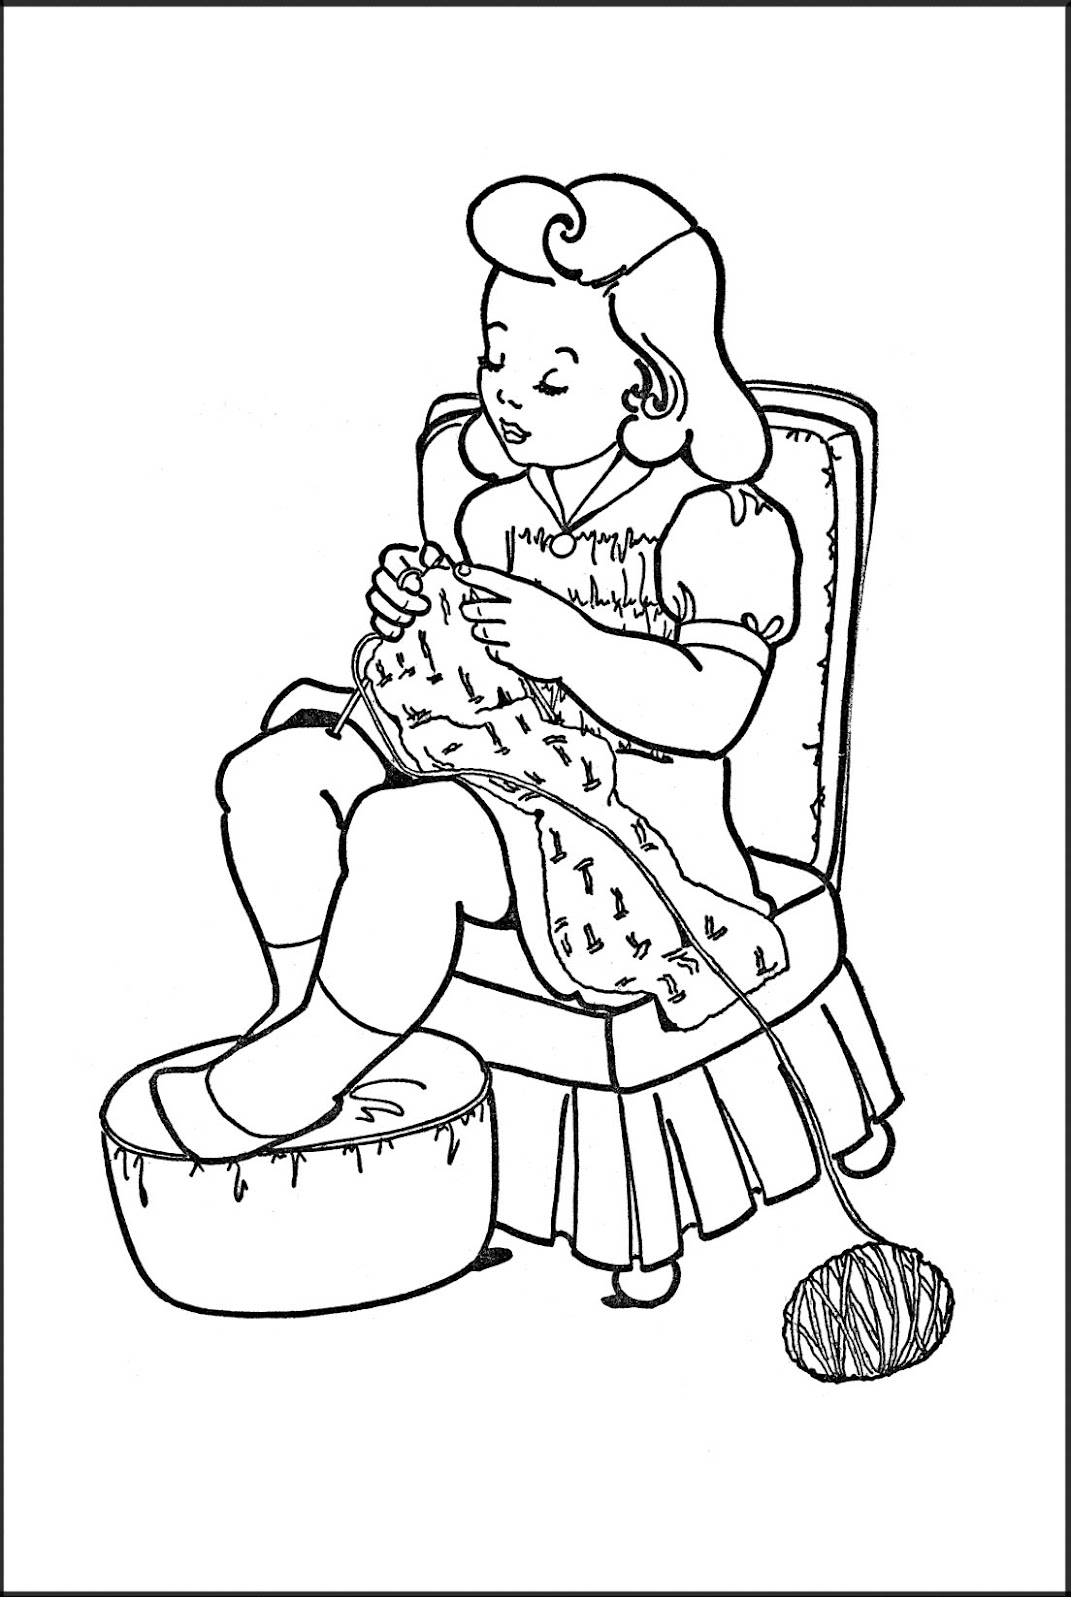 coloring clipart for kids kids printable coloring page girl knitting the clipart kids coloring for